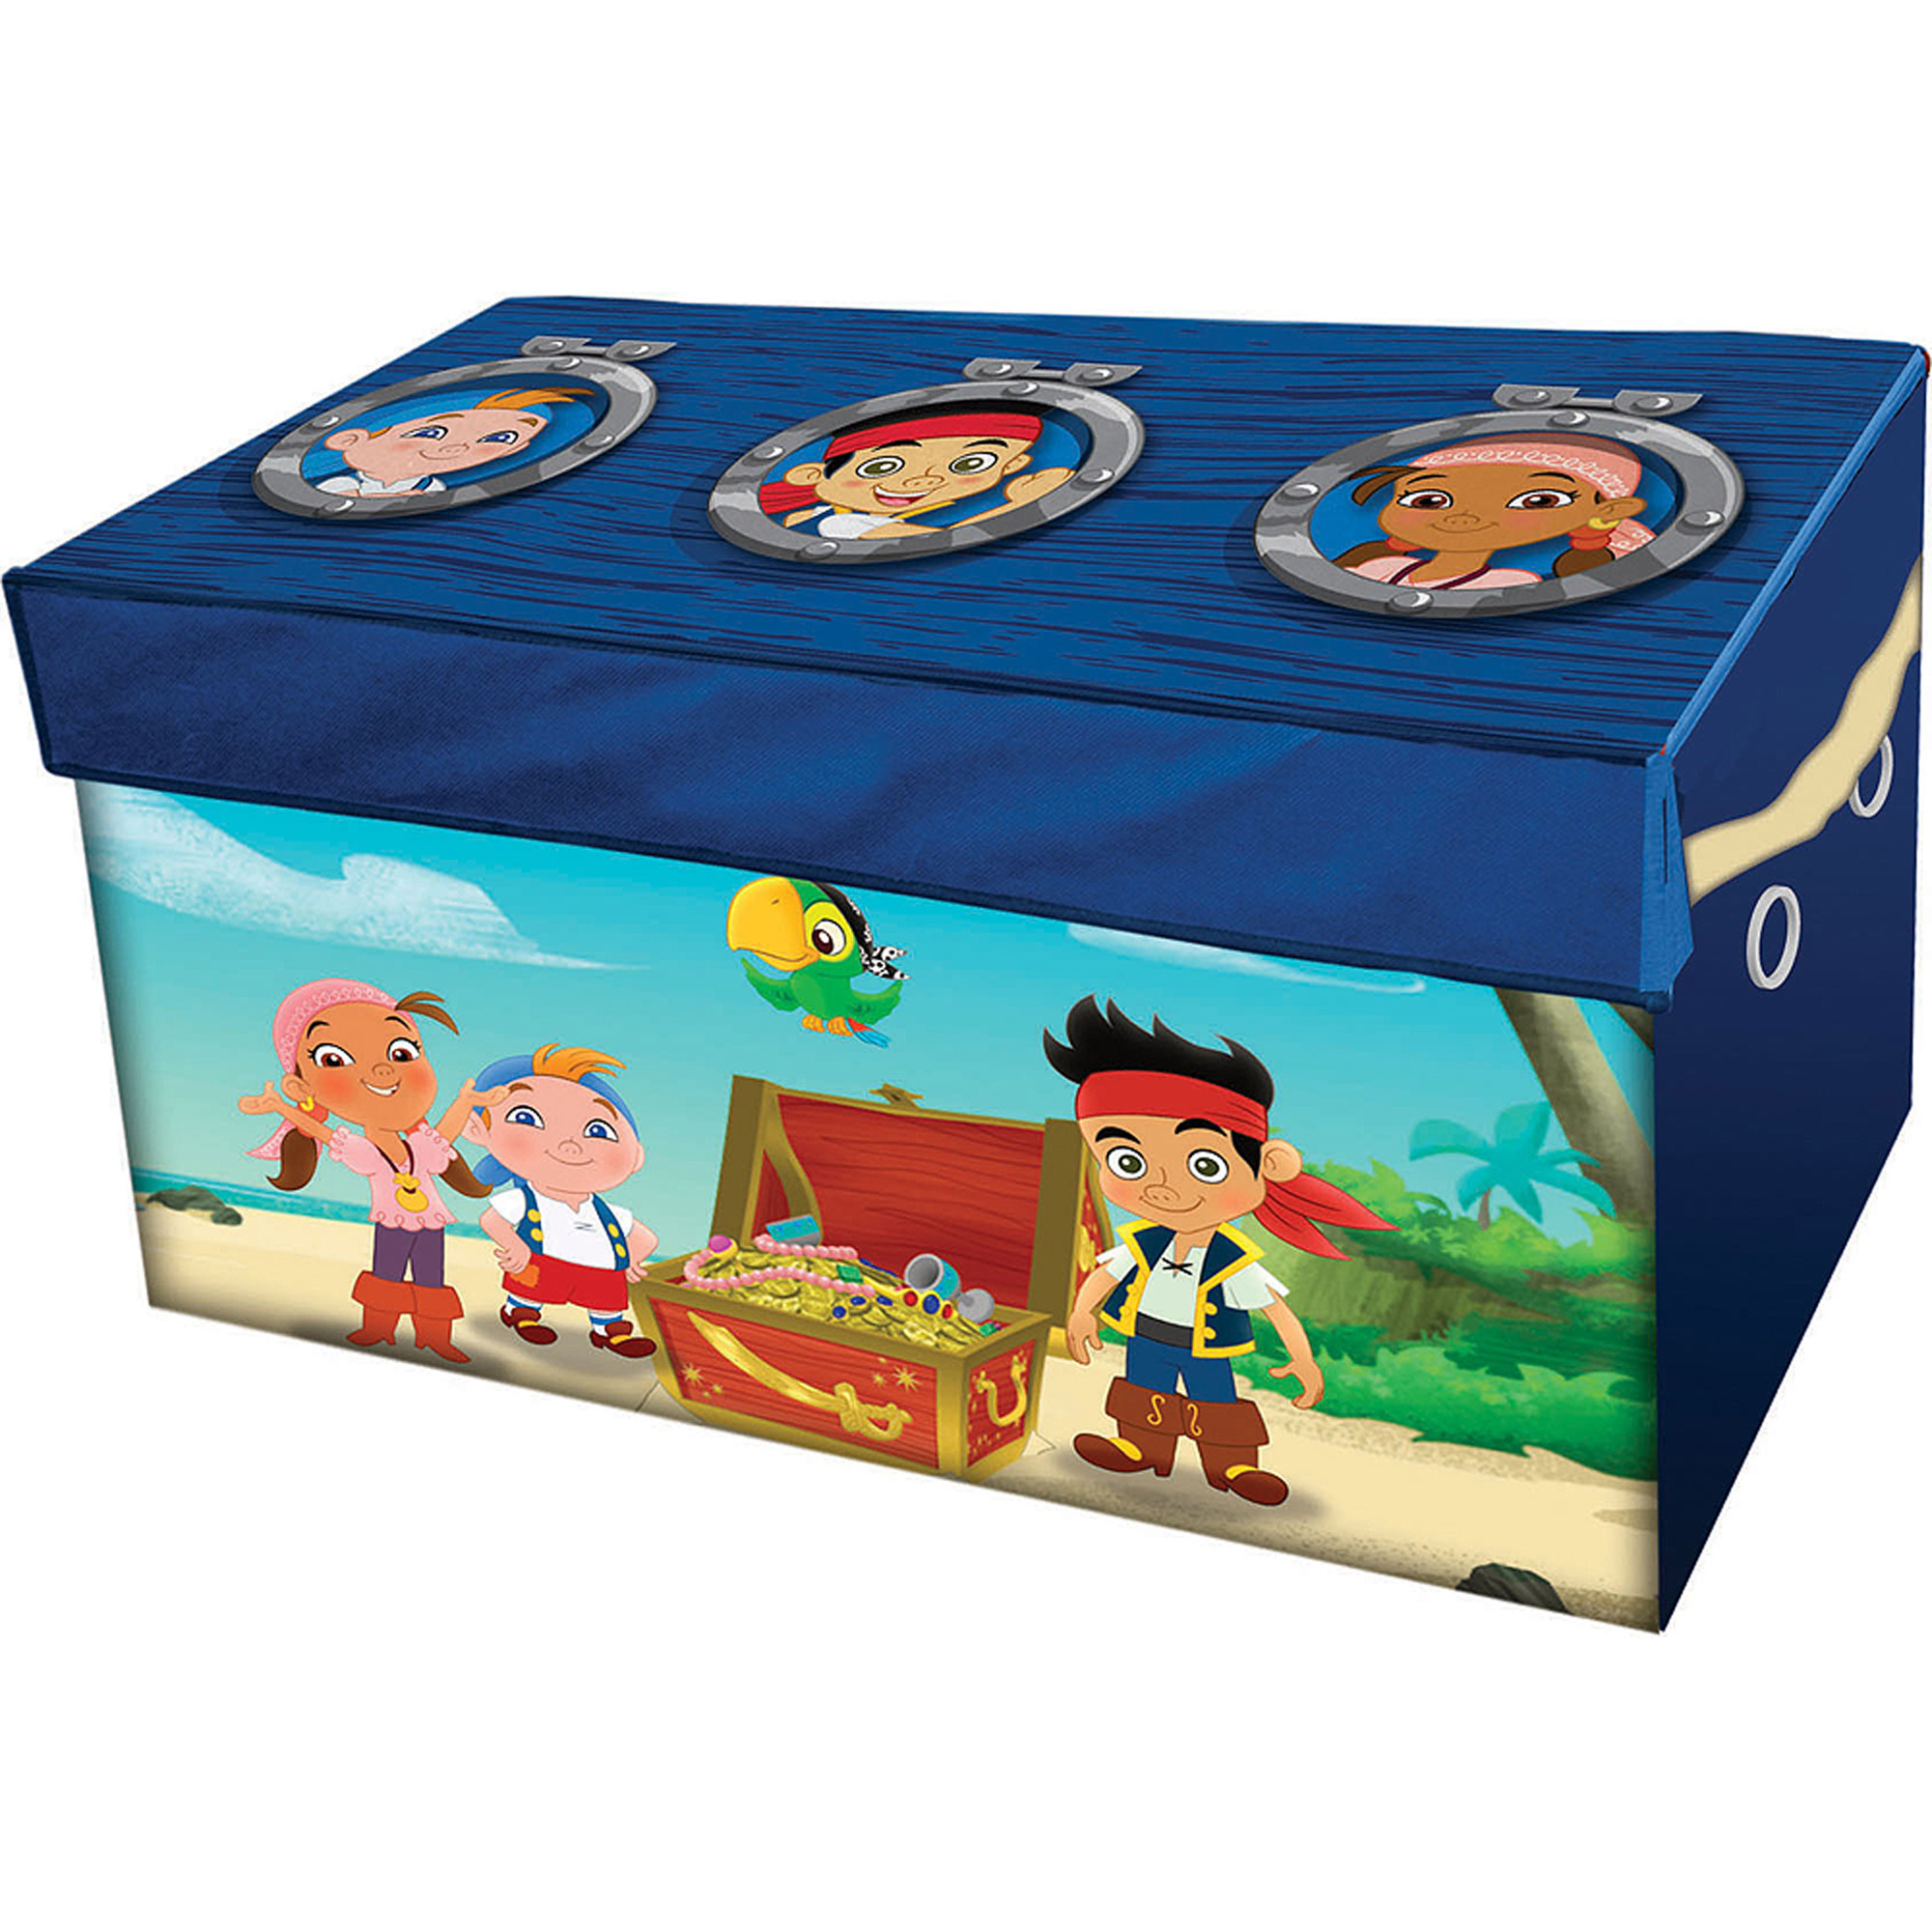 Disney Jake & the Neverland Pirates Oversized Soft Collapsible Storage Toy Trunk